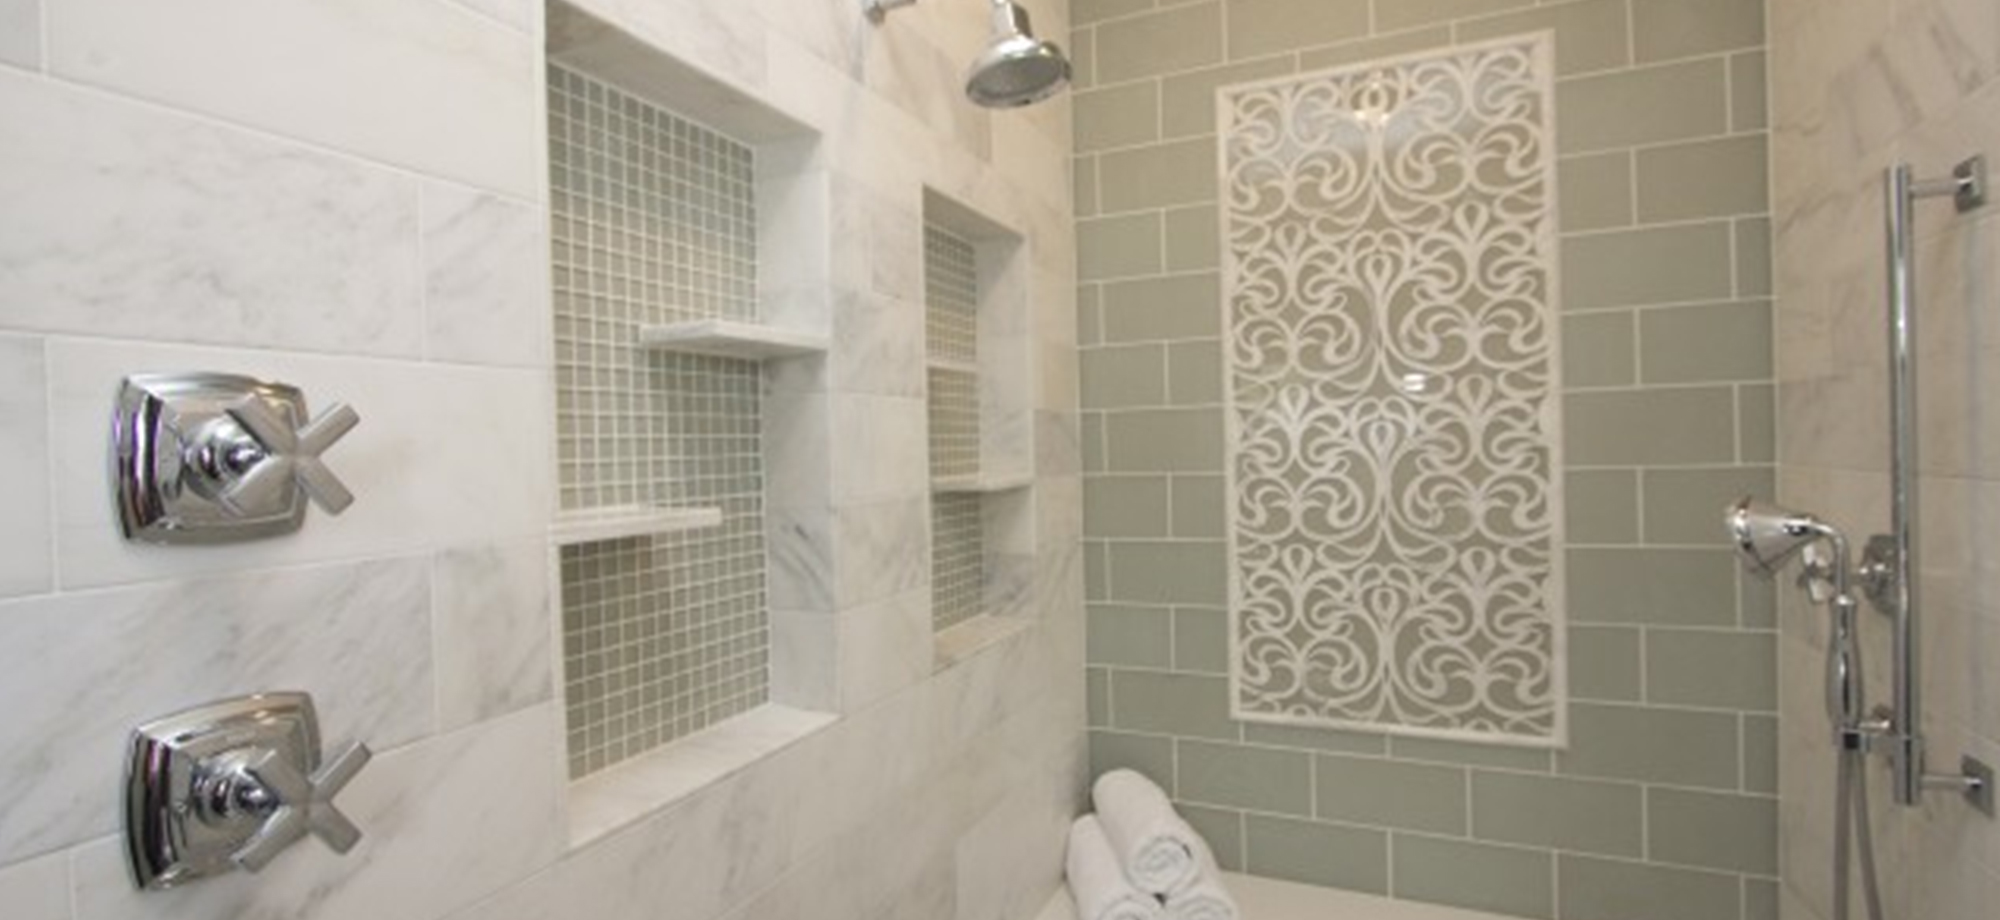 Tile Store, Kitchen Backsplash | Sarasota, FL - Sandollar Tile